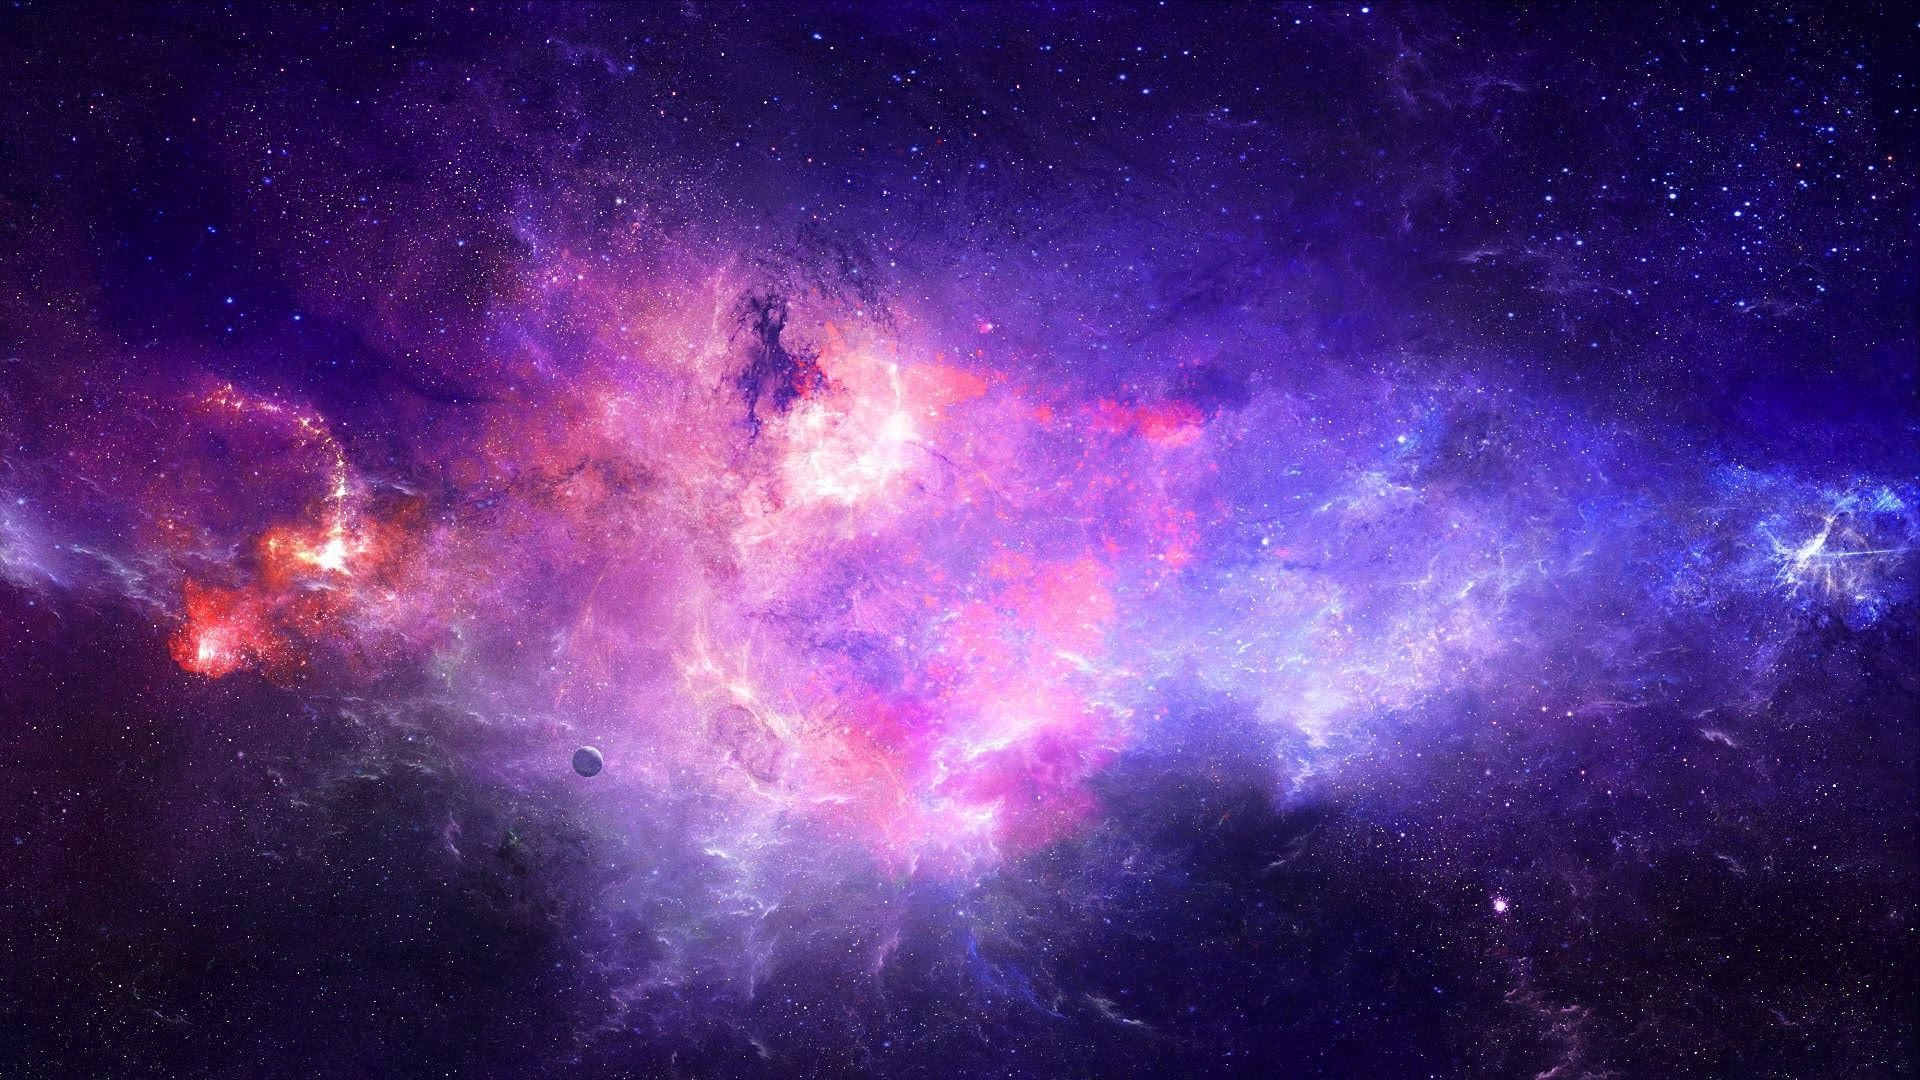 End-TIMES-Signs-in-the-Heavens-Are-YOU-Watching-or-Sleeping-Mark-wallpaper-wp3605373